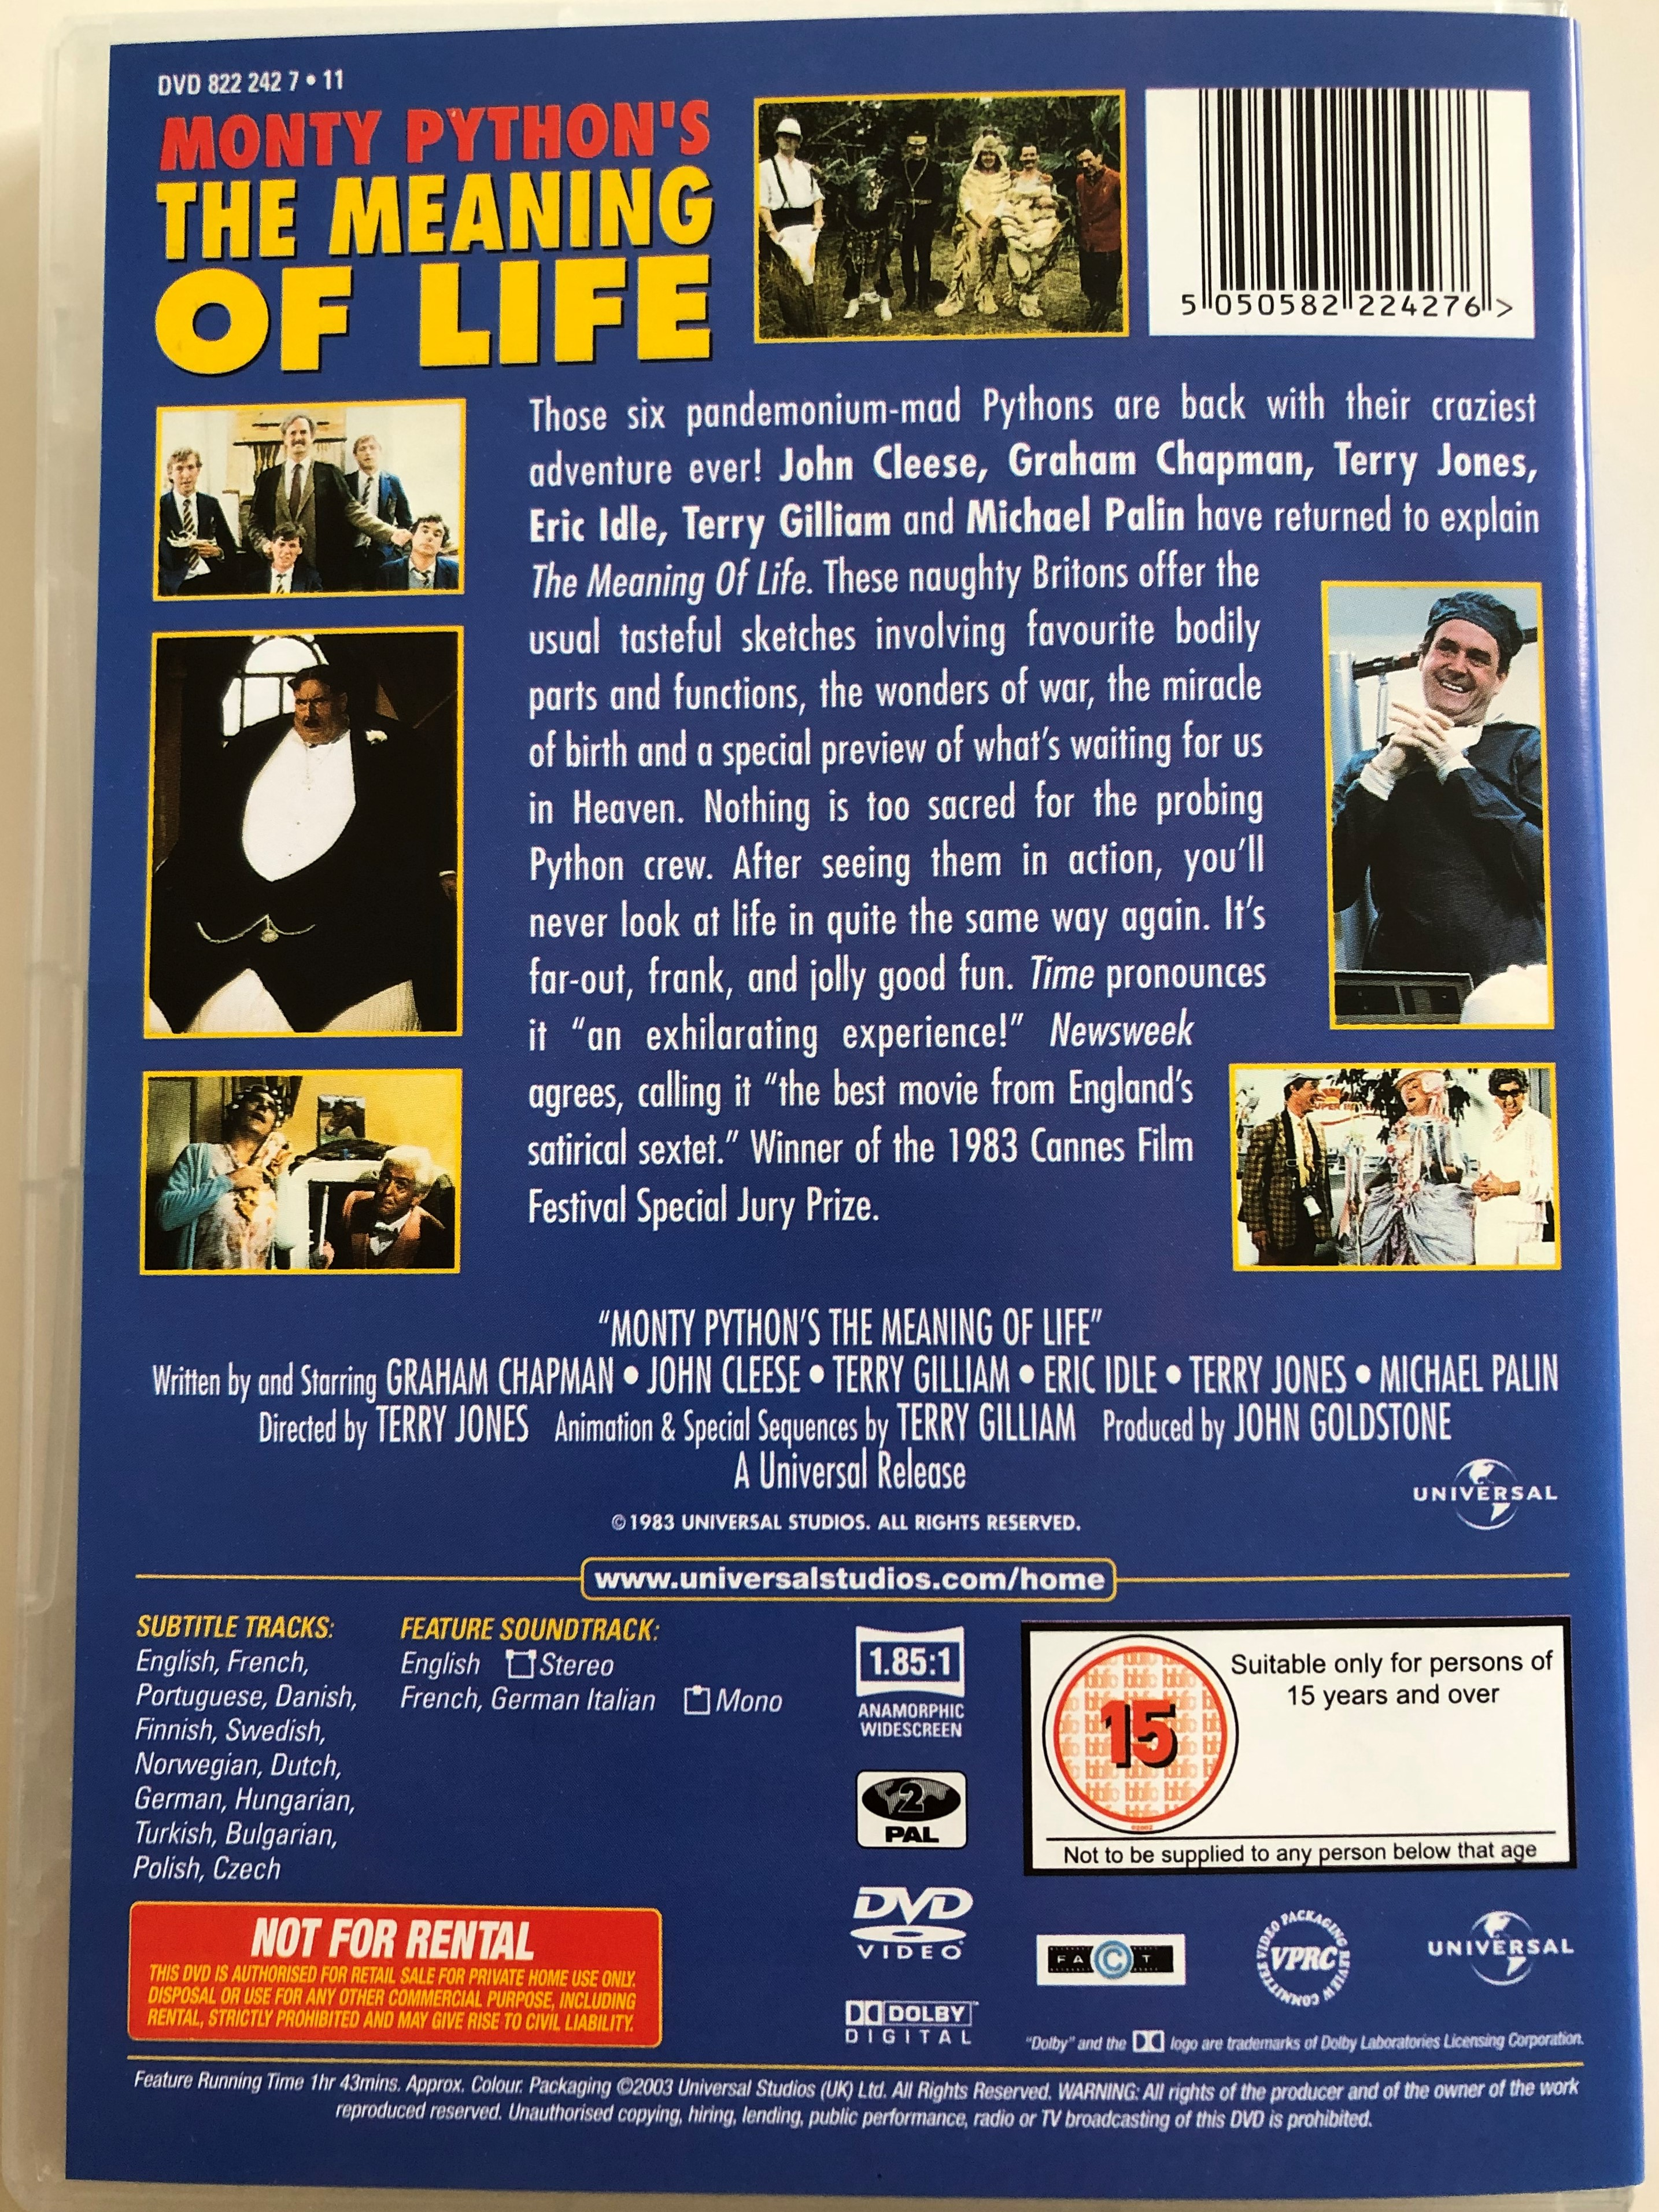 monty-python-s-the-meaning-of-life-dvd-1983-directed-by-terry-jones-2.jpg